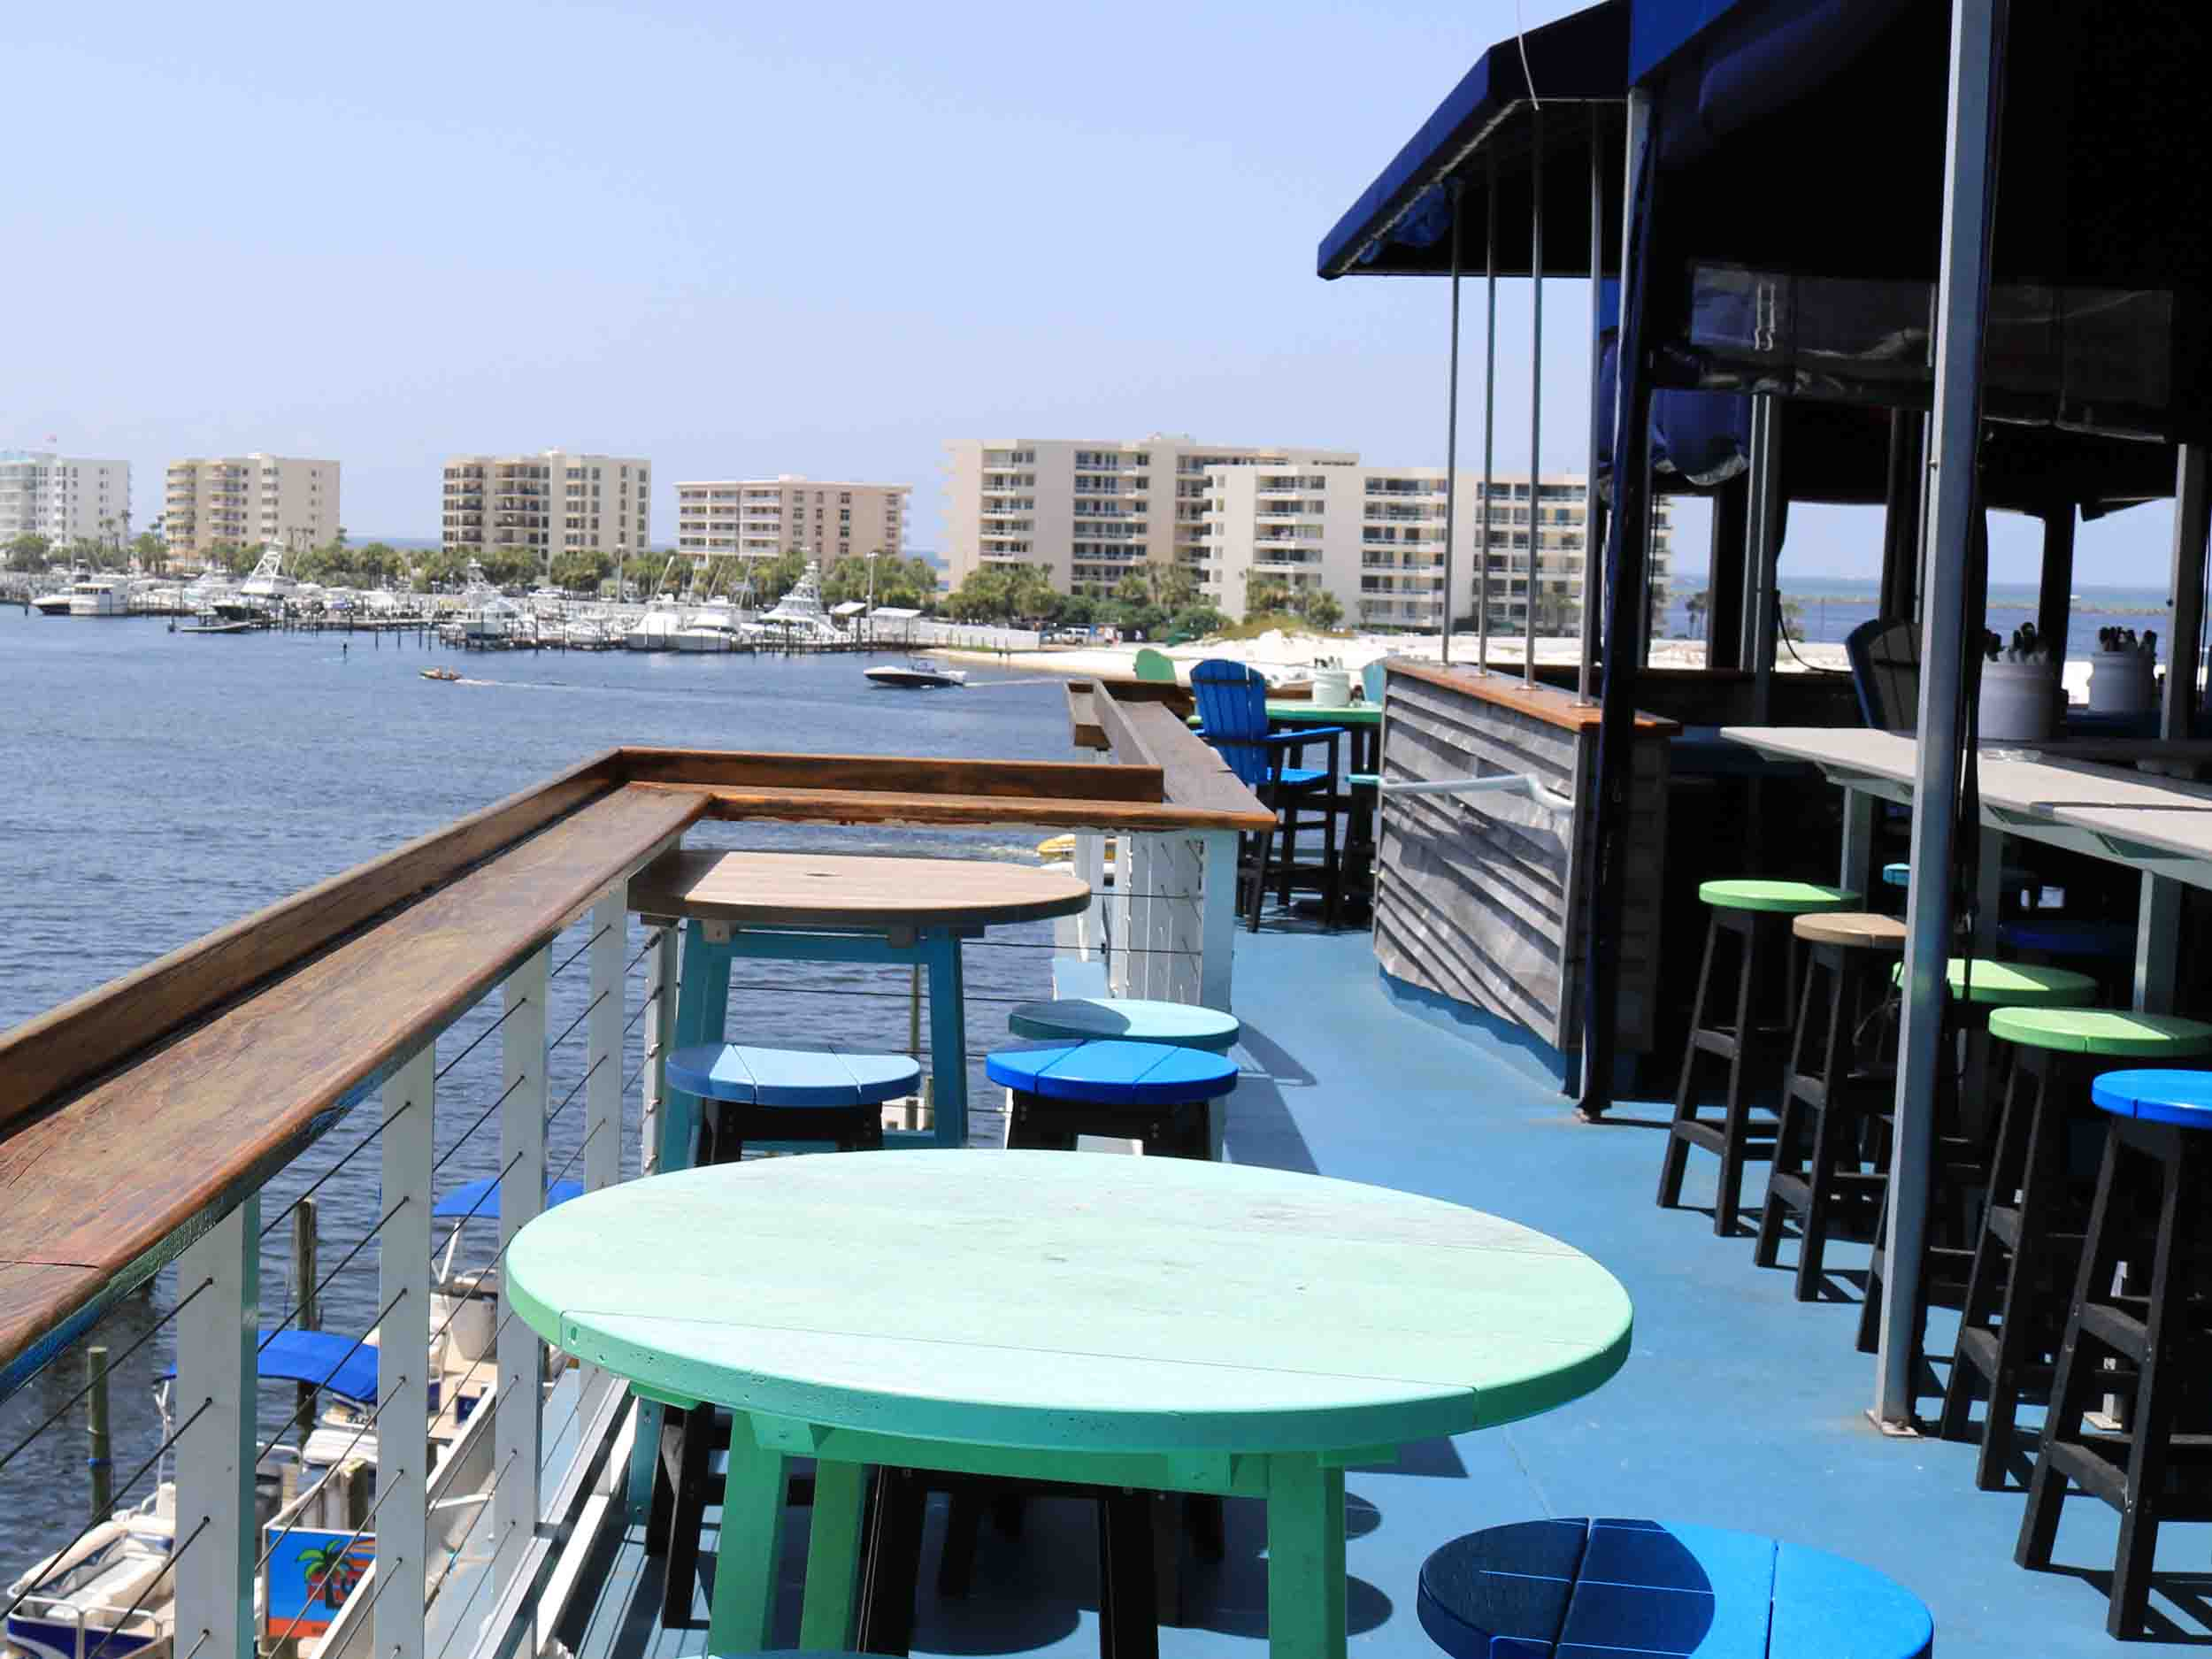 Tailfins, Ale House, and Oyster Bar Patio Area